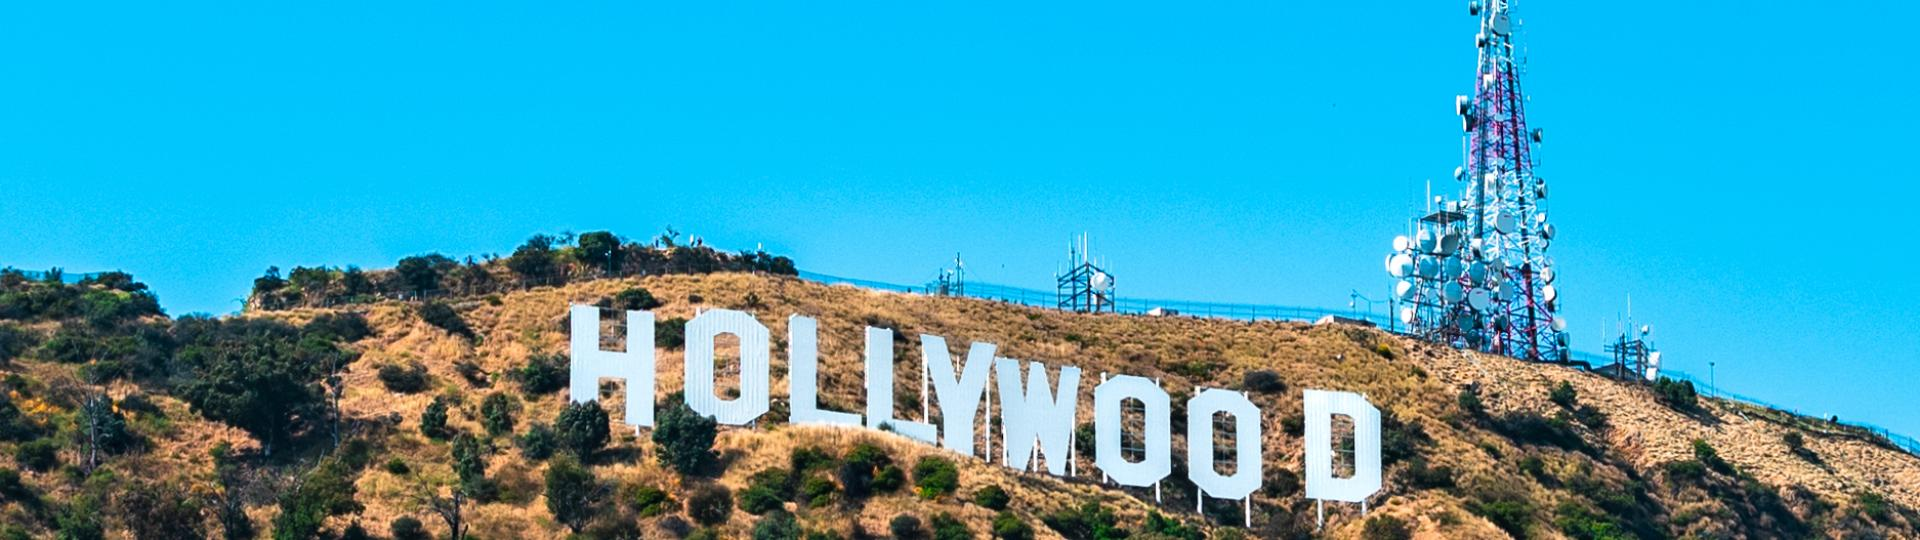 hollywood sign receivable lease